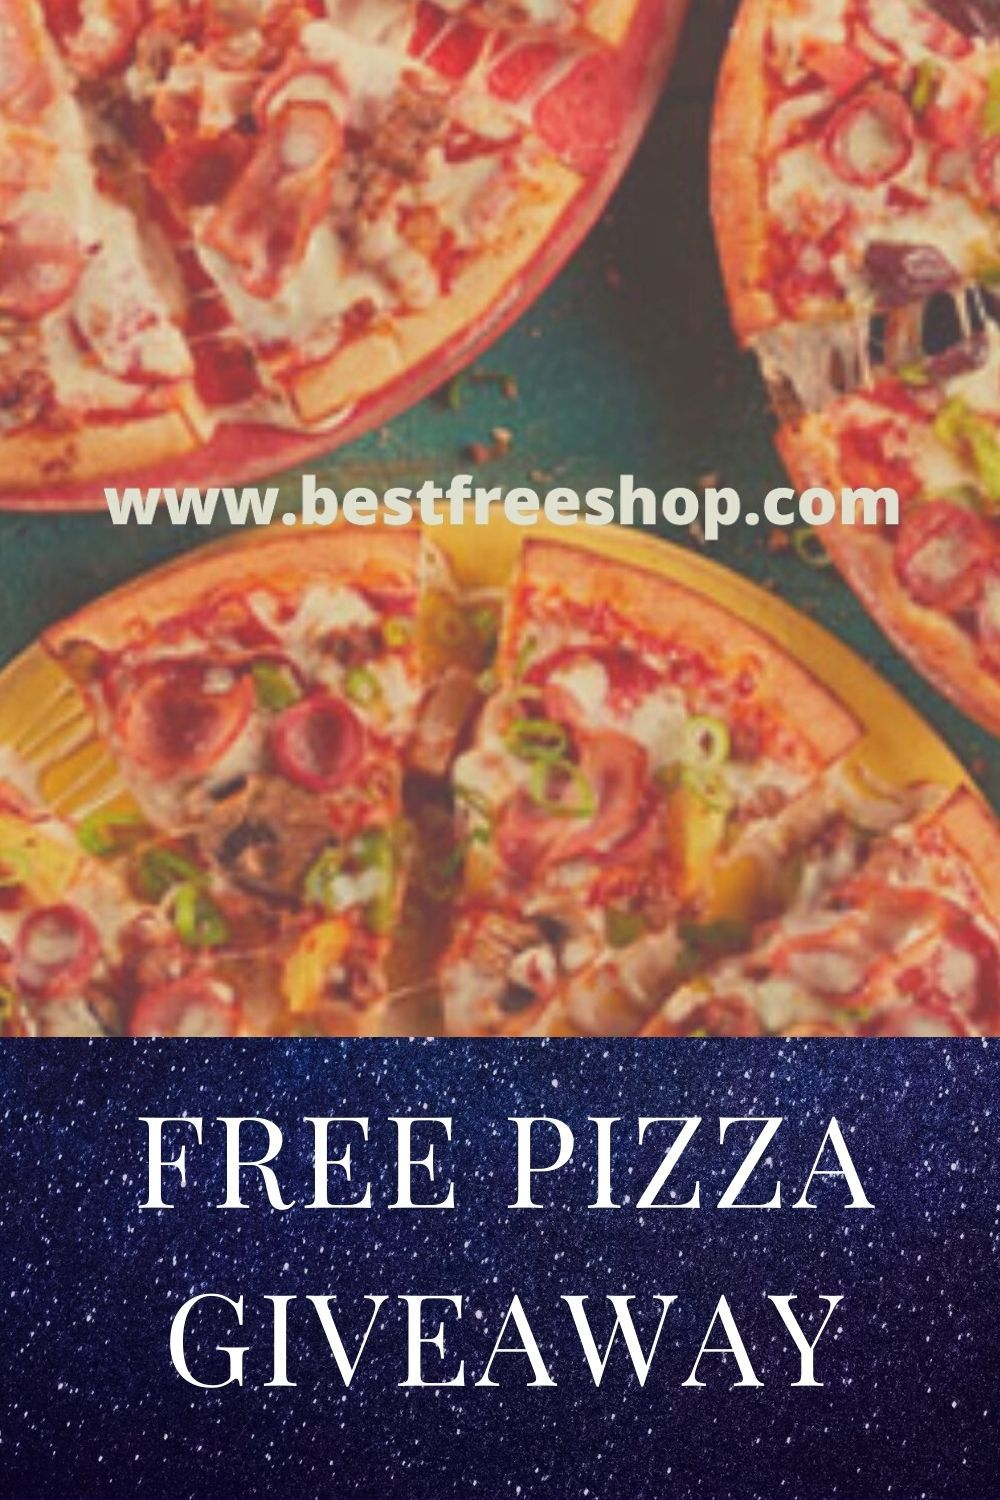 Pin On Free Pizza Giveaway